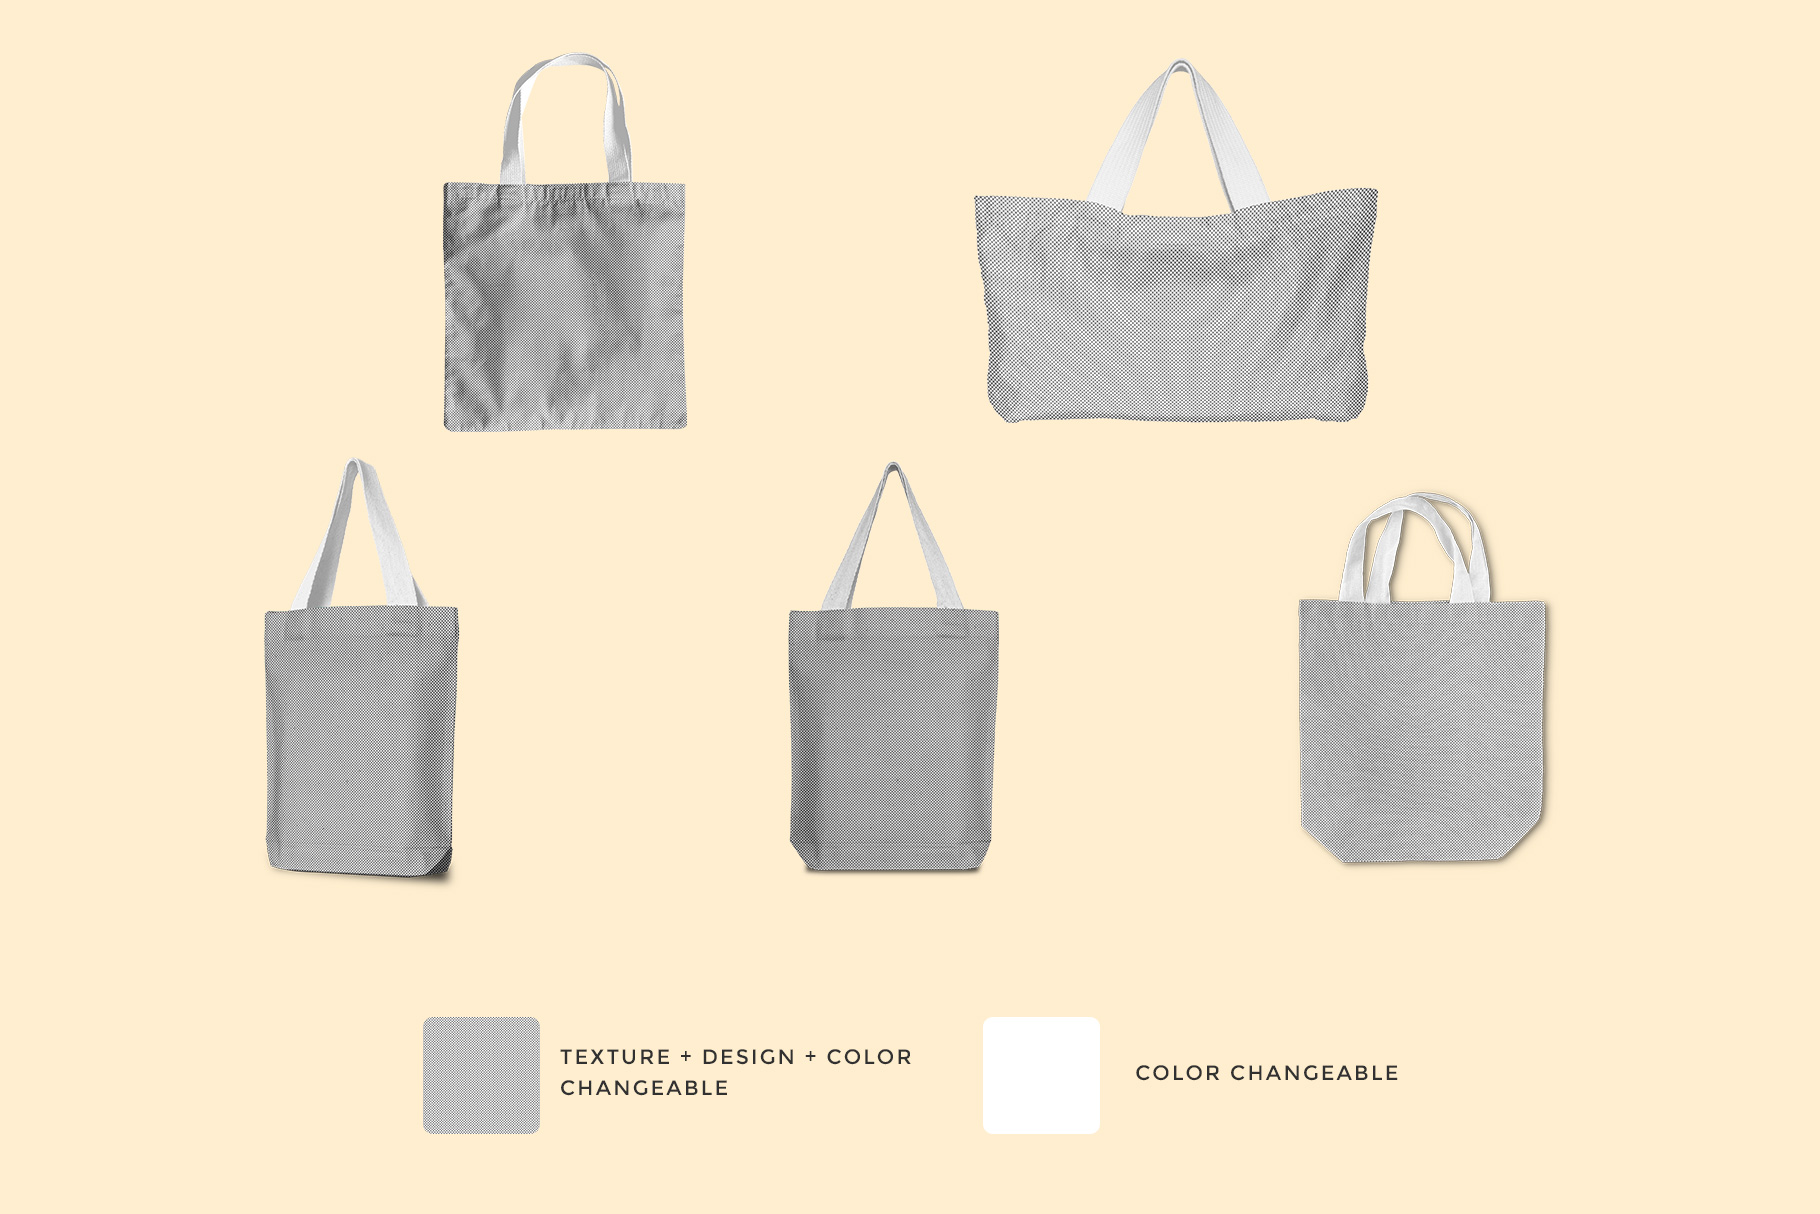 different types of tote bag mockup images used to create the tote bag mockup set